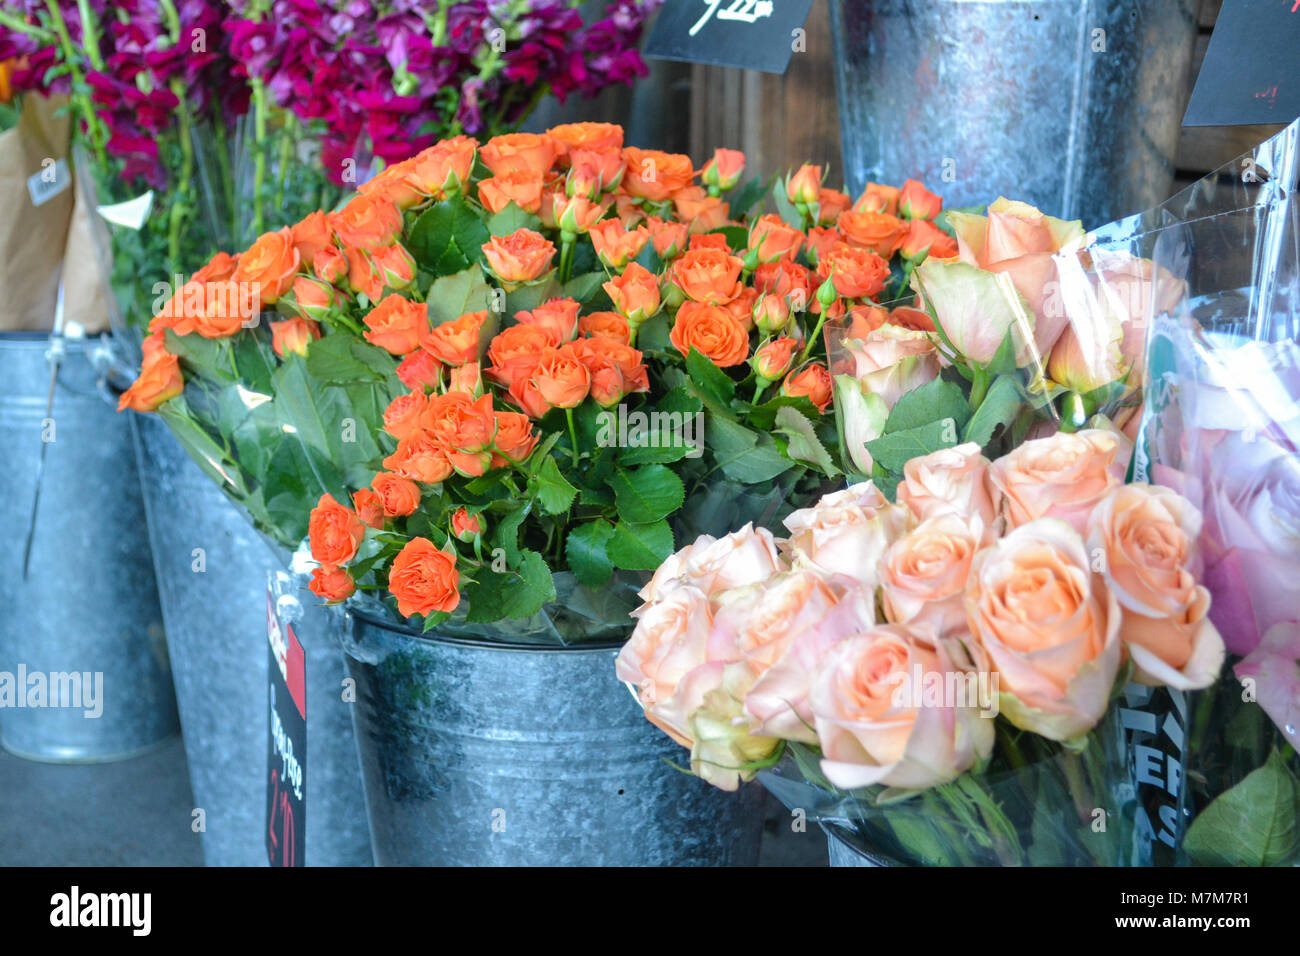 Bunches of fresh flowers and roses in galvanized steel buckets at the local city market - Stock Image